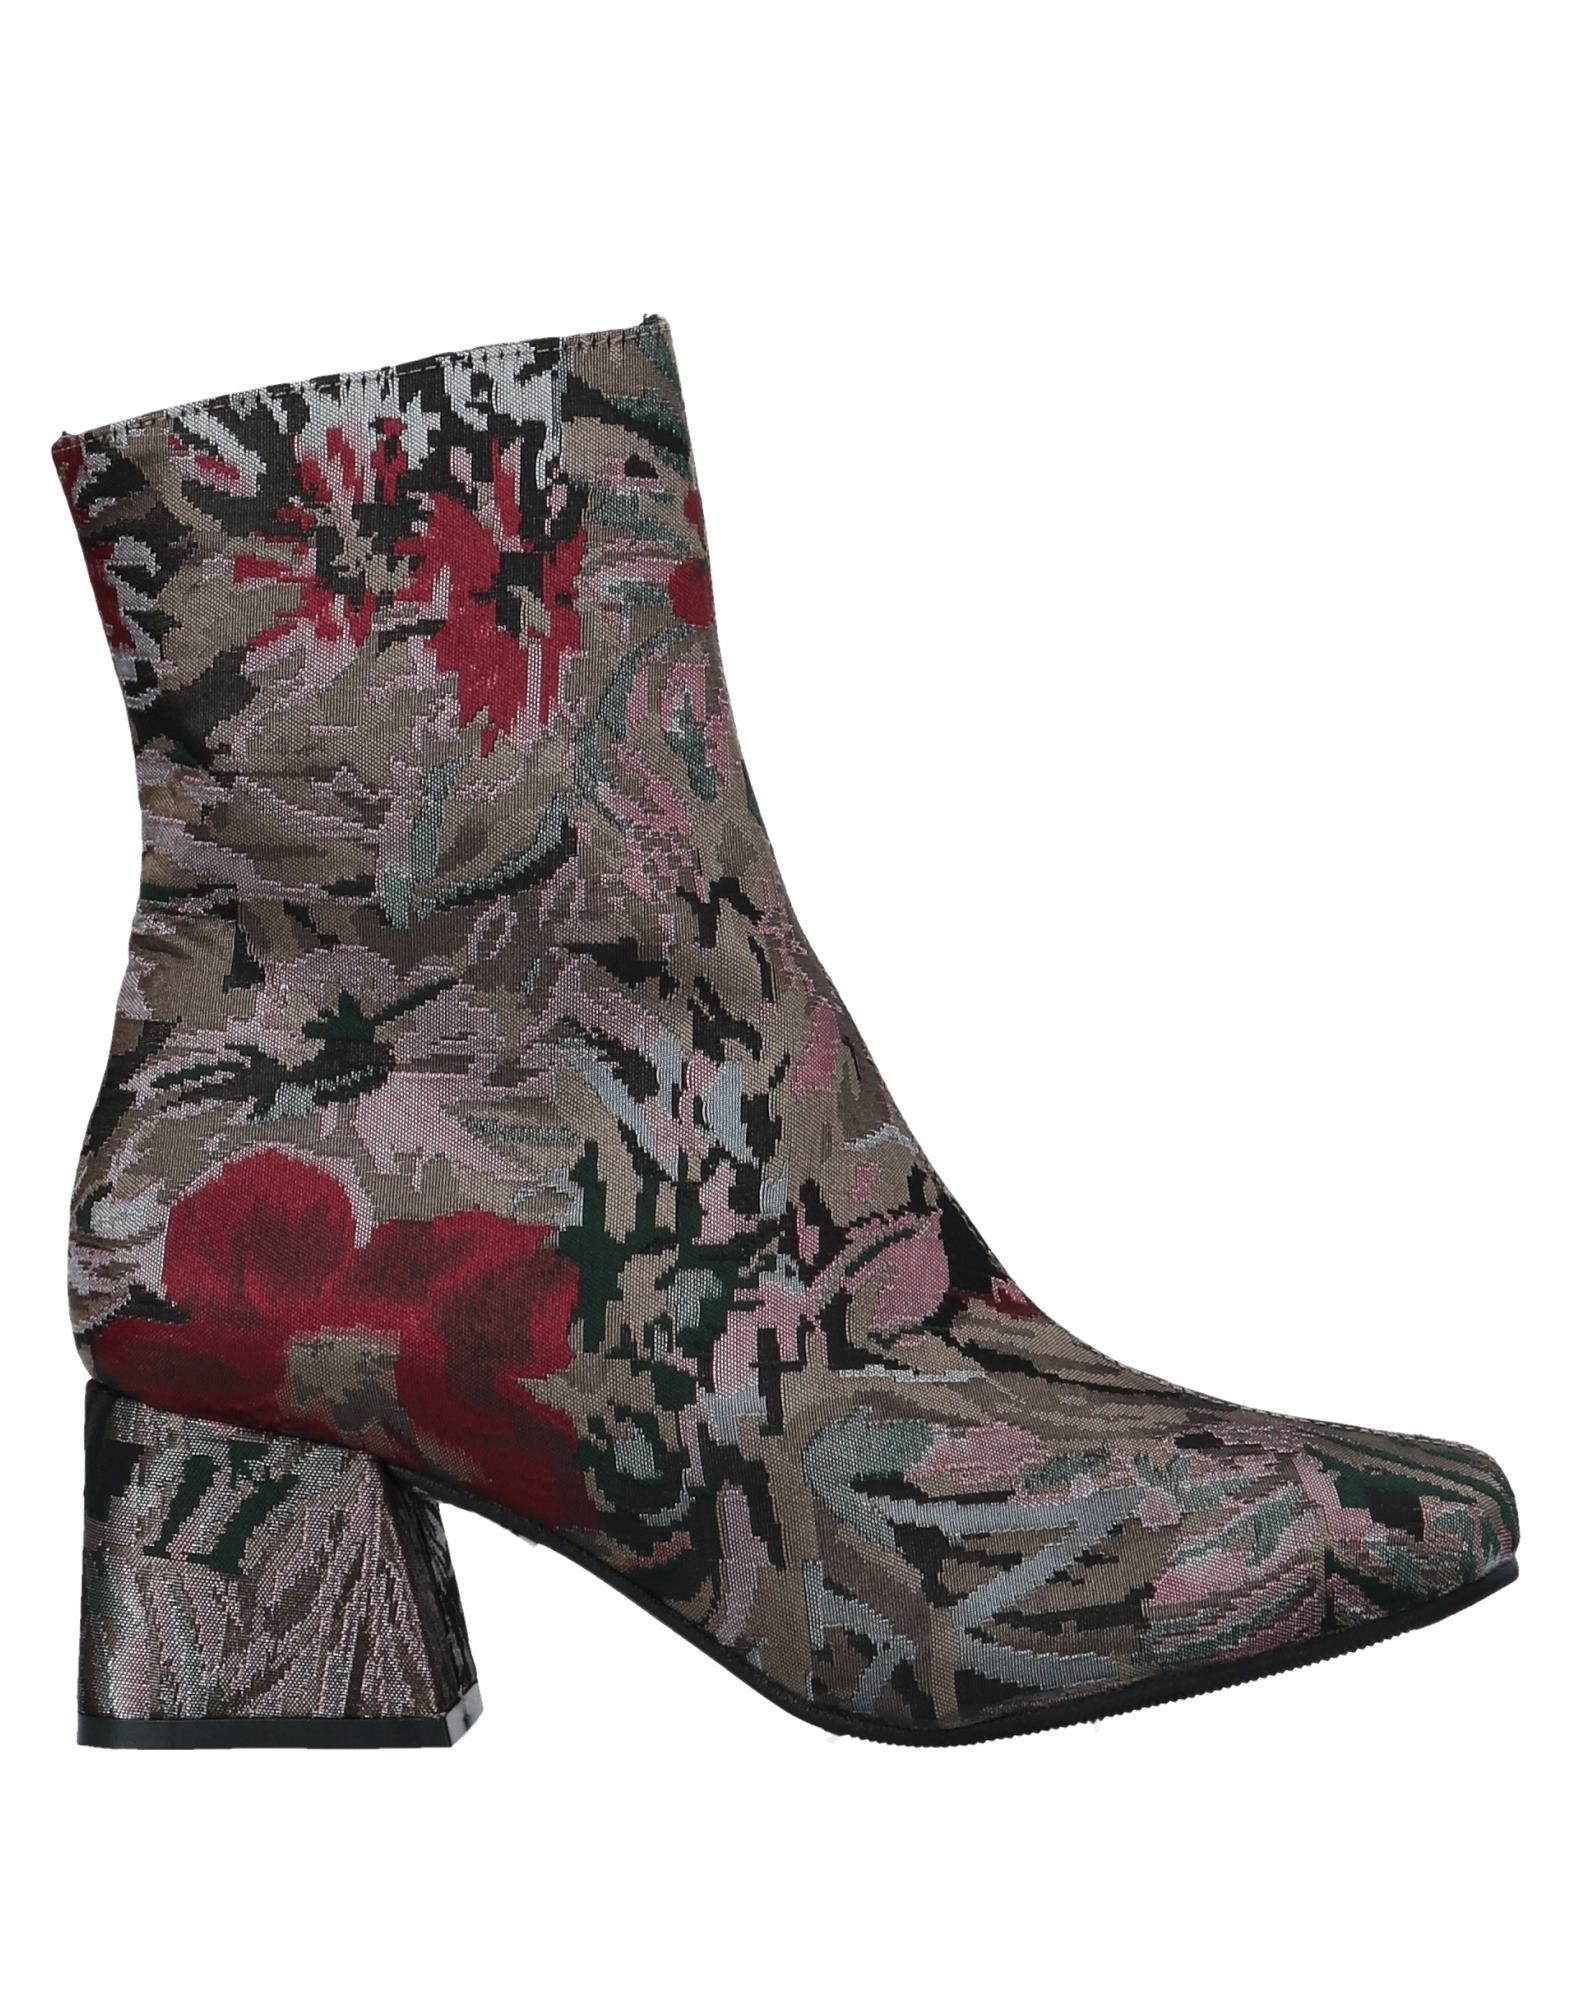 67 Ankle Sixtyseven Ankle 67 Boot - Women 67 Sixtyseven Ankle Boots online on  Australia - 11544189UK 161bb8